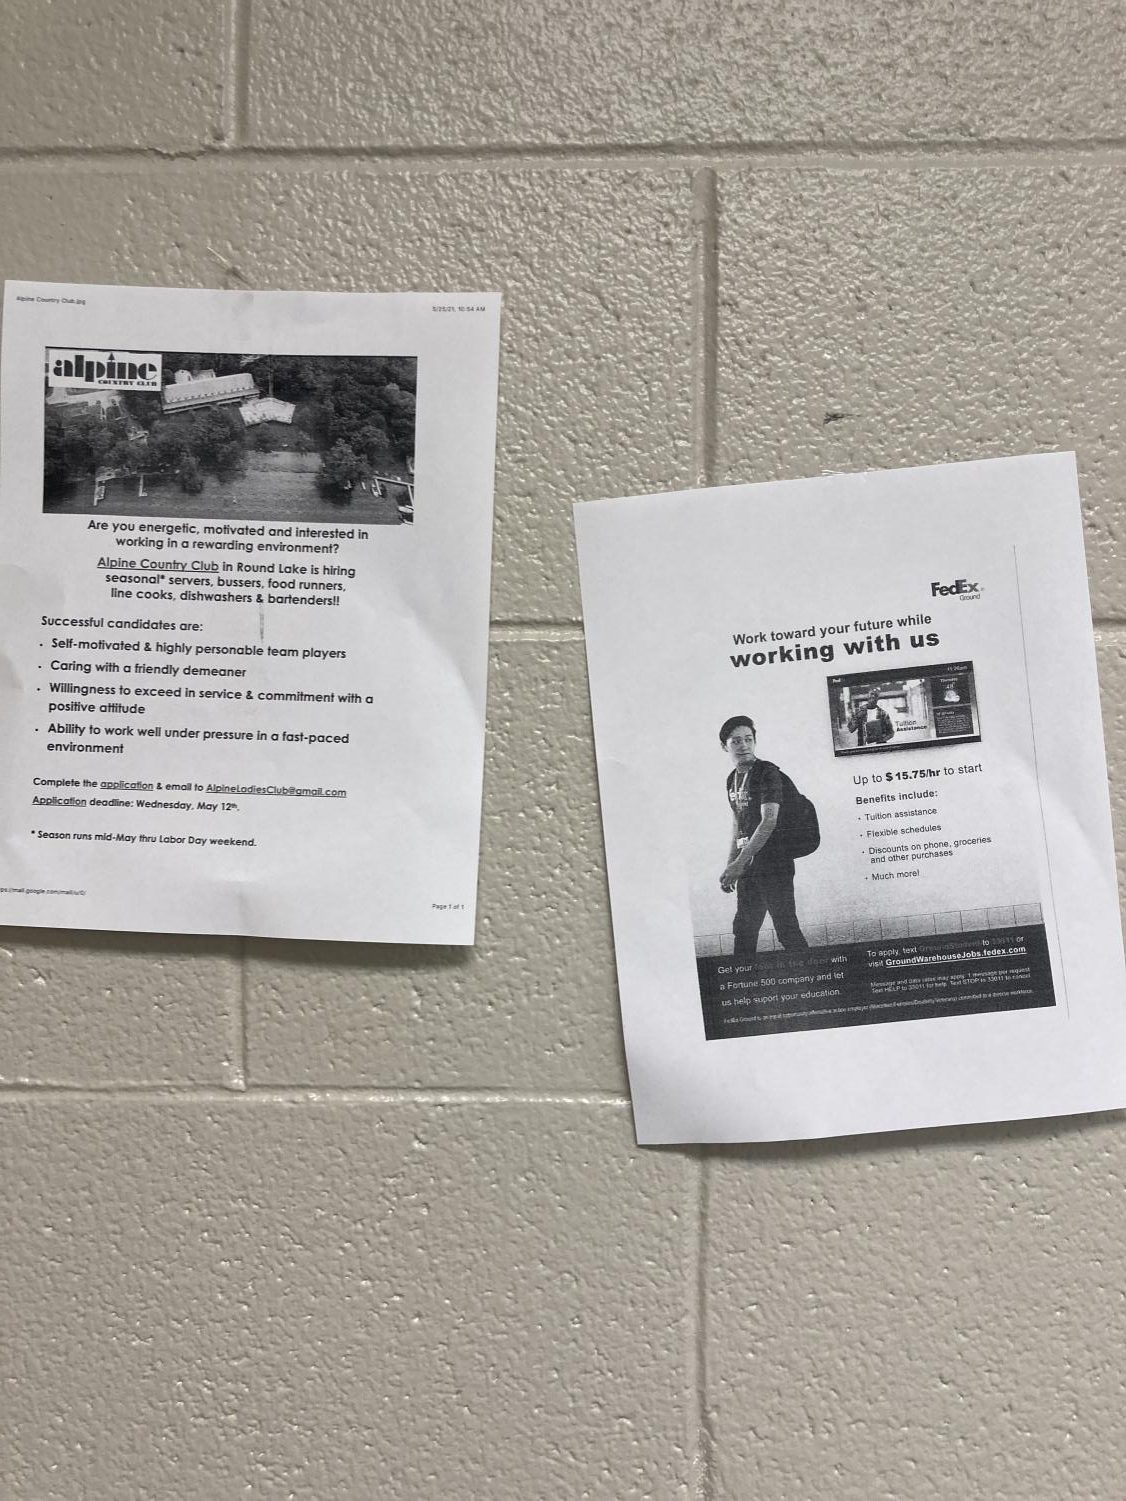 Ram Central Station helps students find jobs by posting fliers around school.